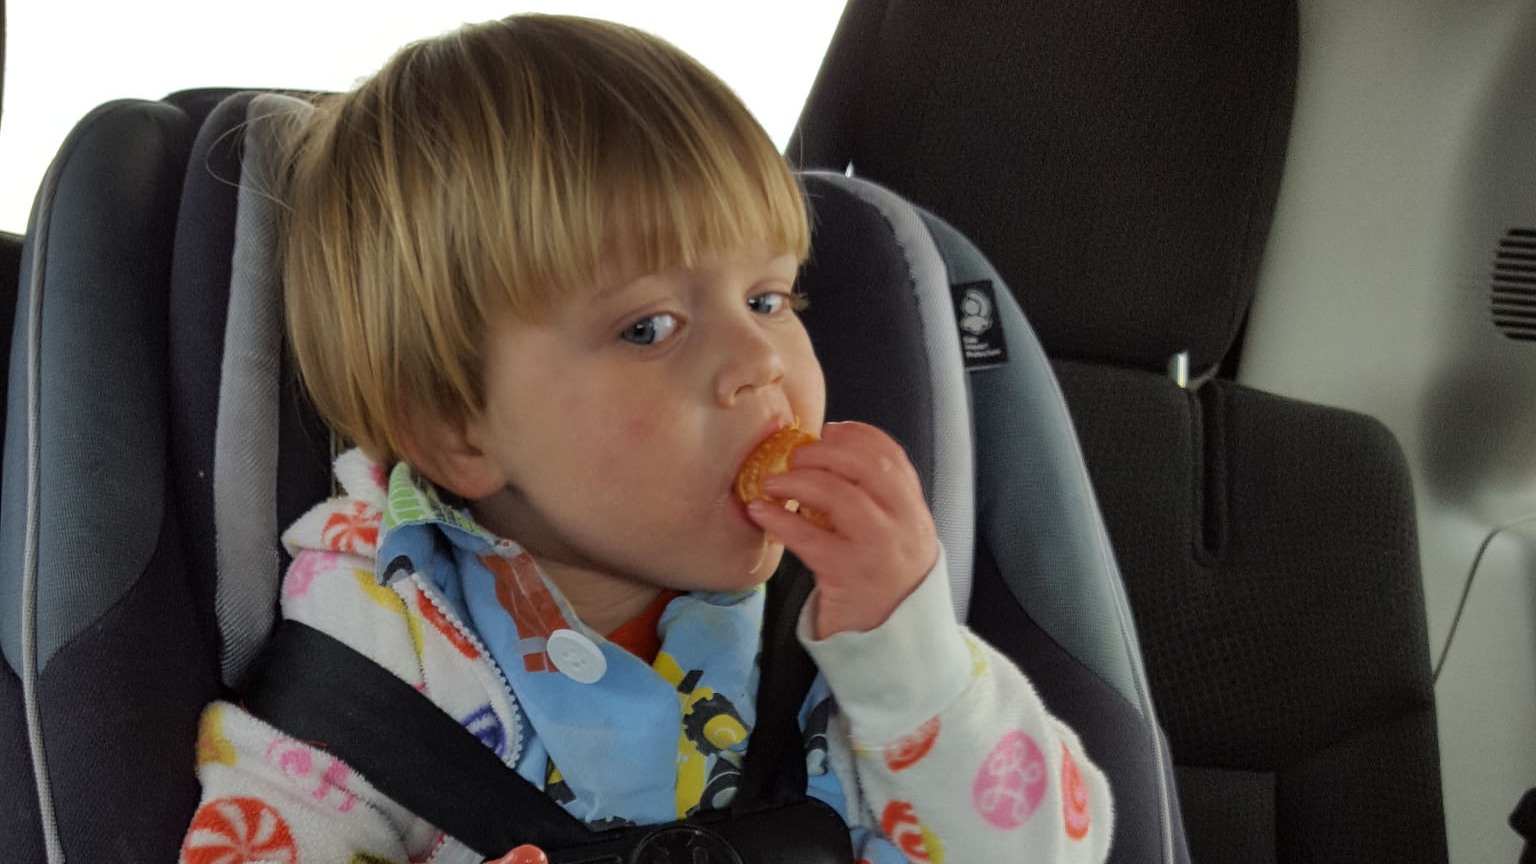 If Your Child's Car Seat Straps Are Loose, Look For Wayward Snacks